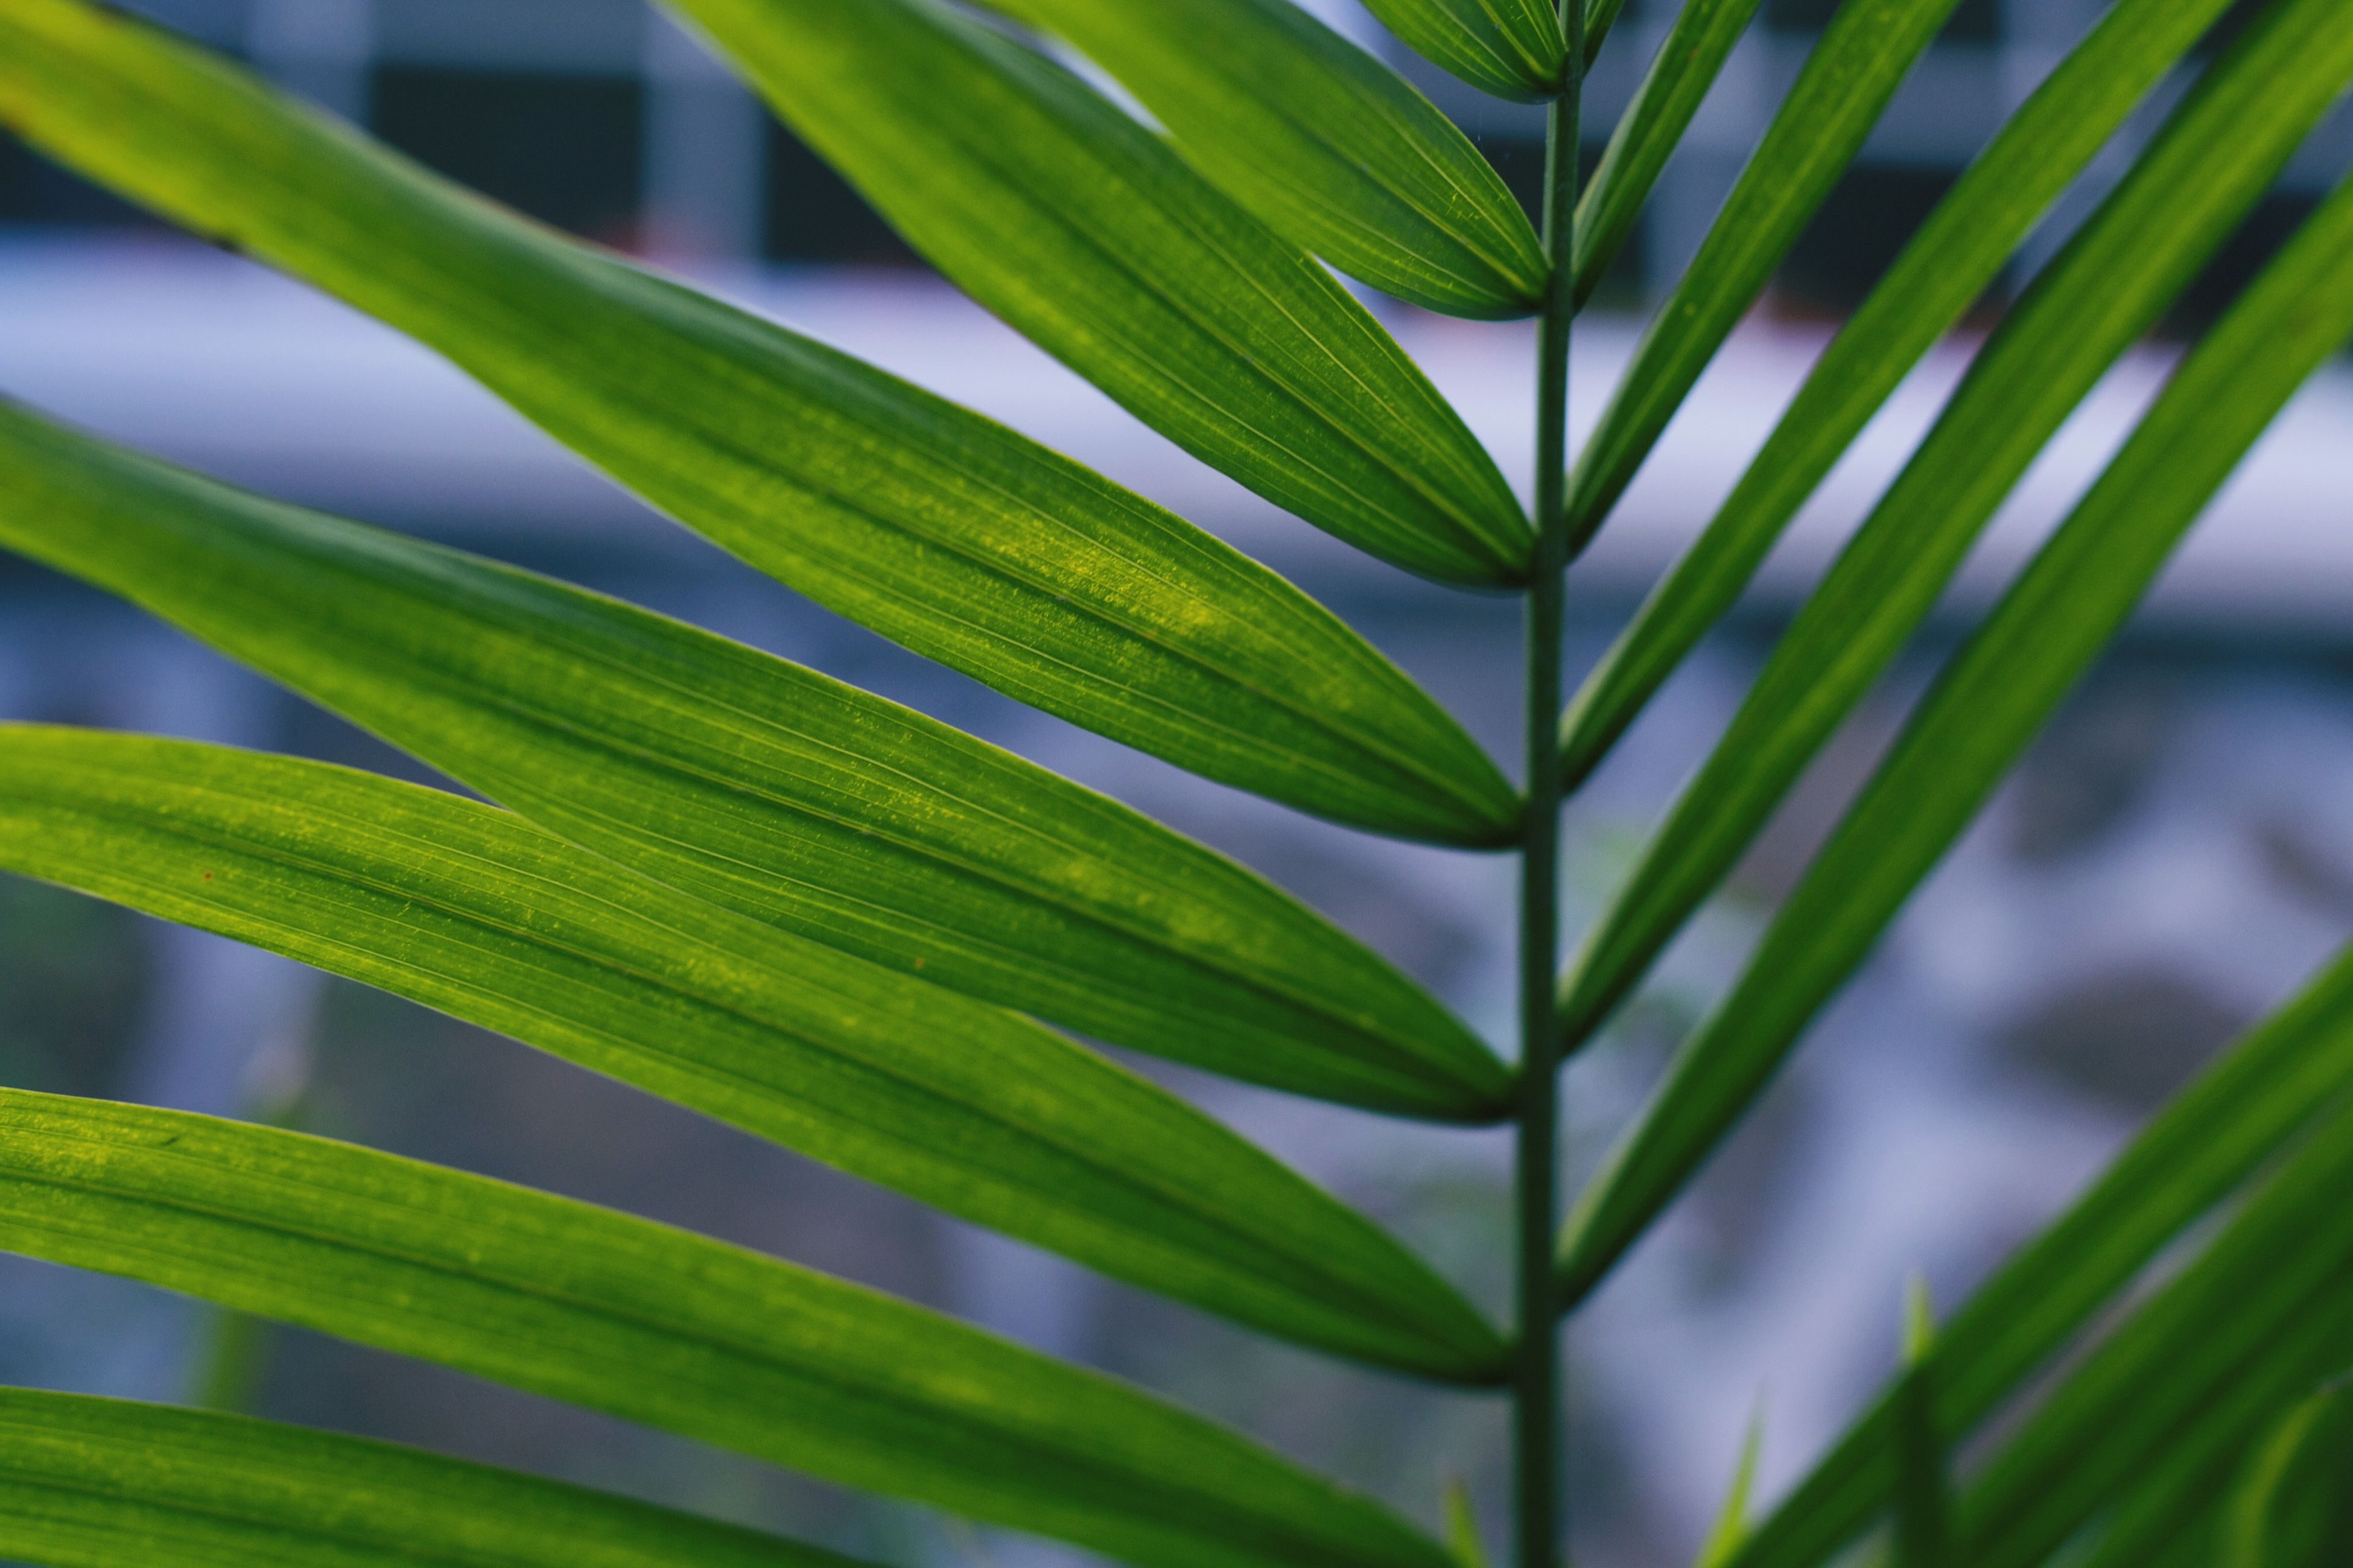 leaf, green color, growth, plant, close-up, focus on foreground, nature, beauty in nature, selective focus, green, leaf vein, freshness, stem, outdoors, day, no people, natural pattern, leaves, fragility, growing